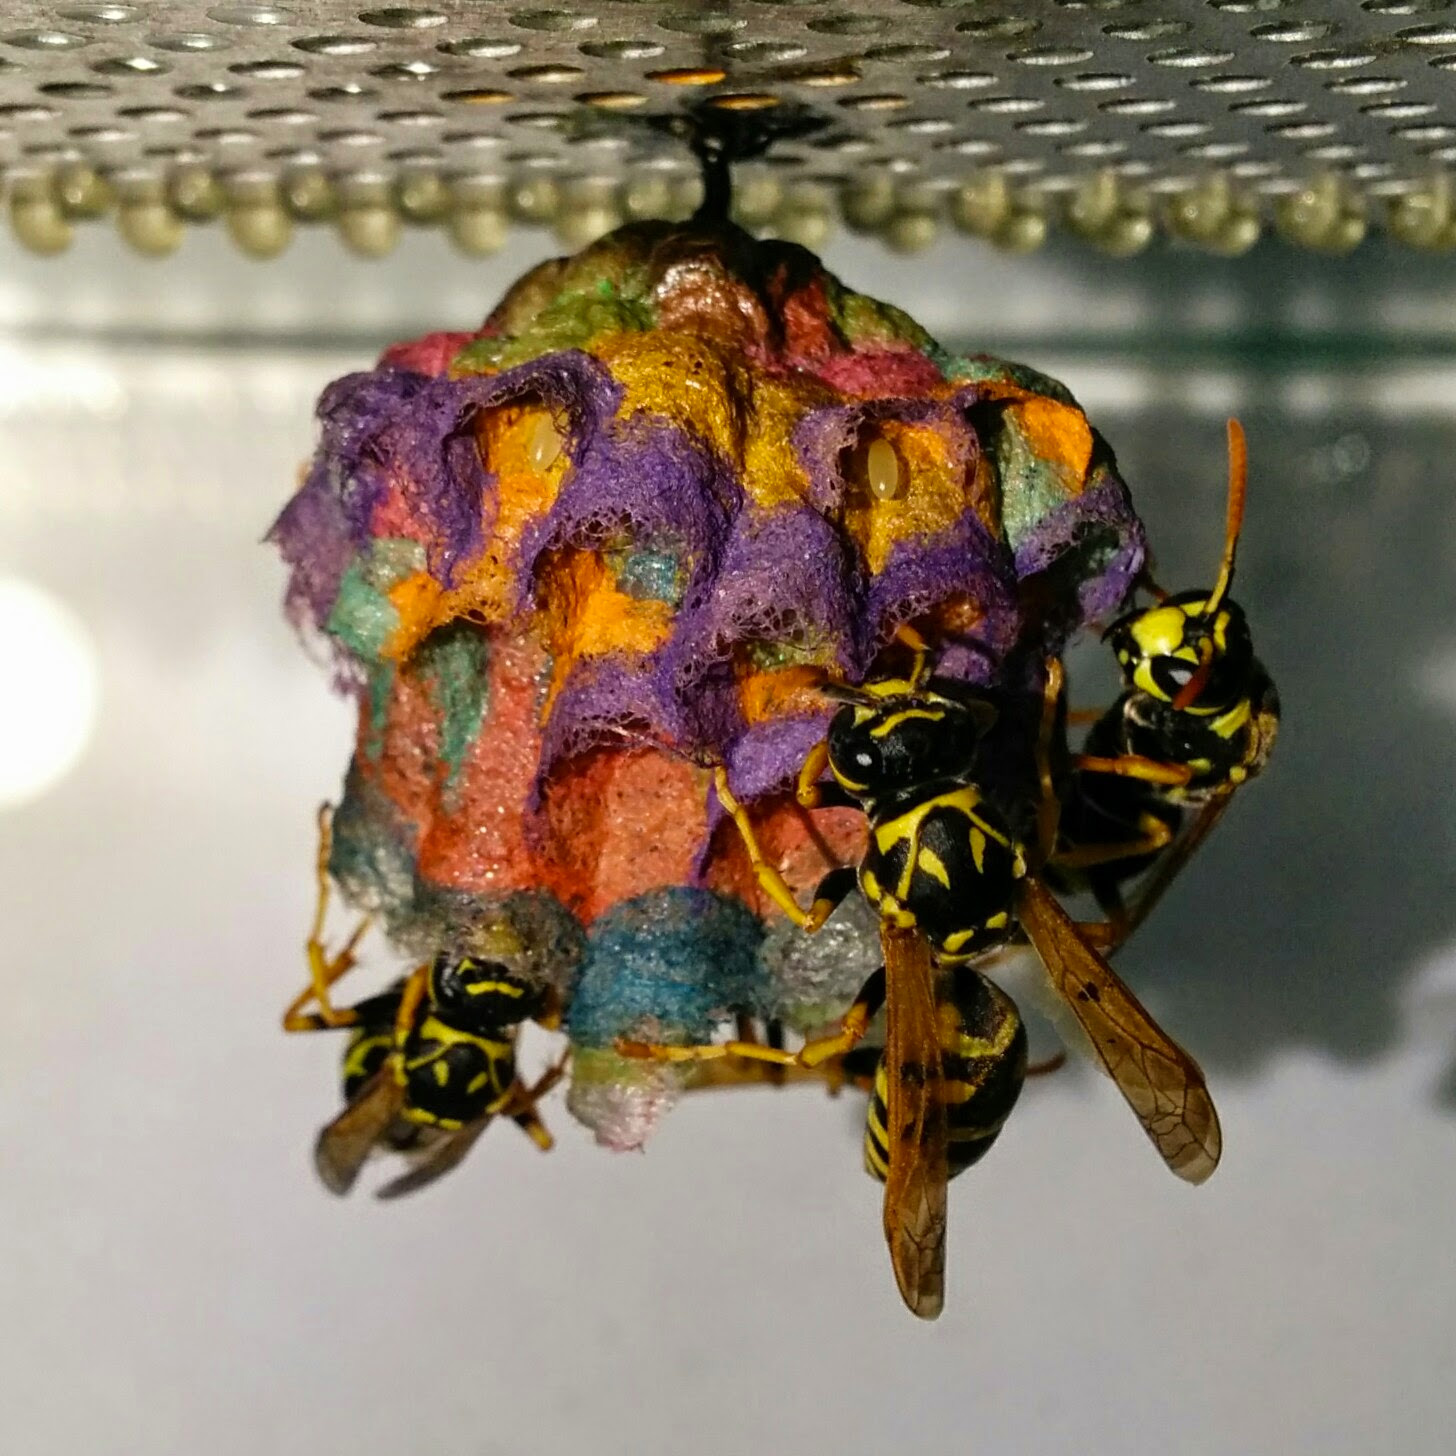 Wasp nests photo